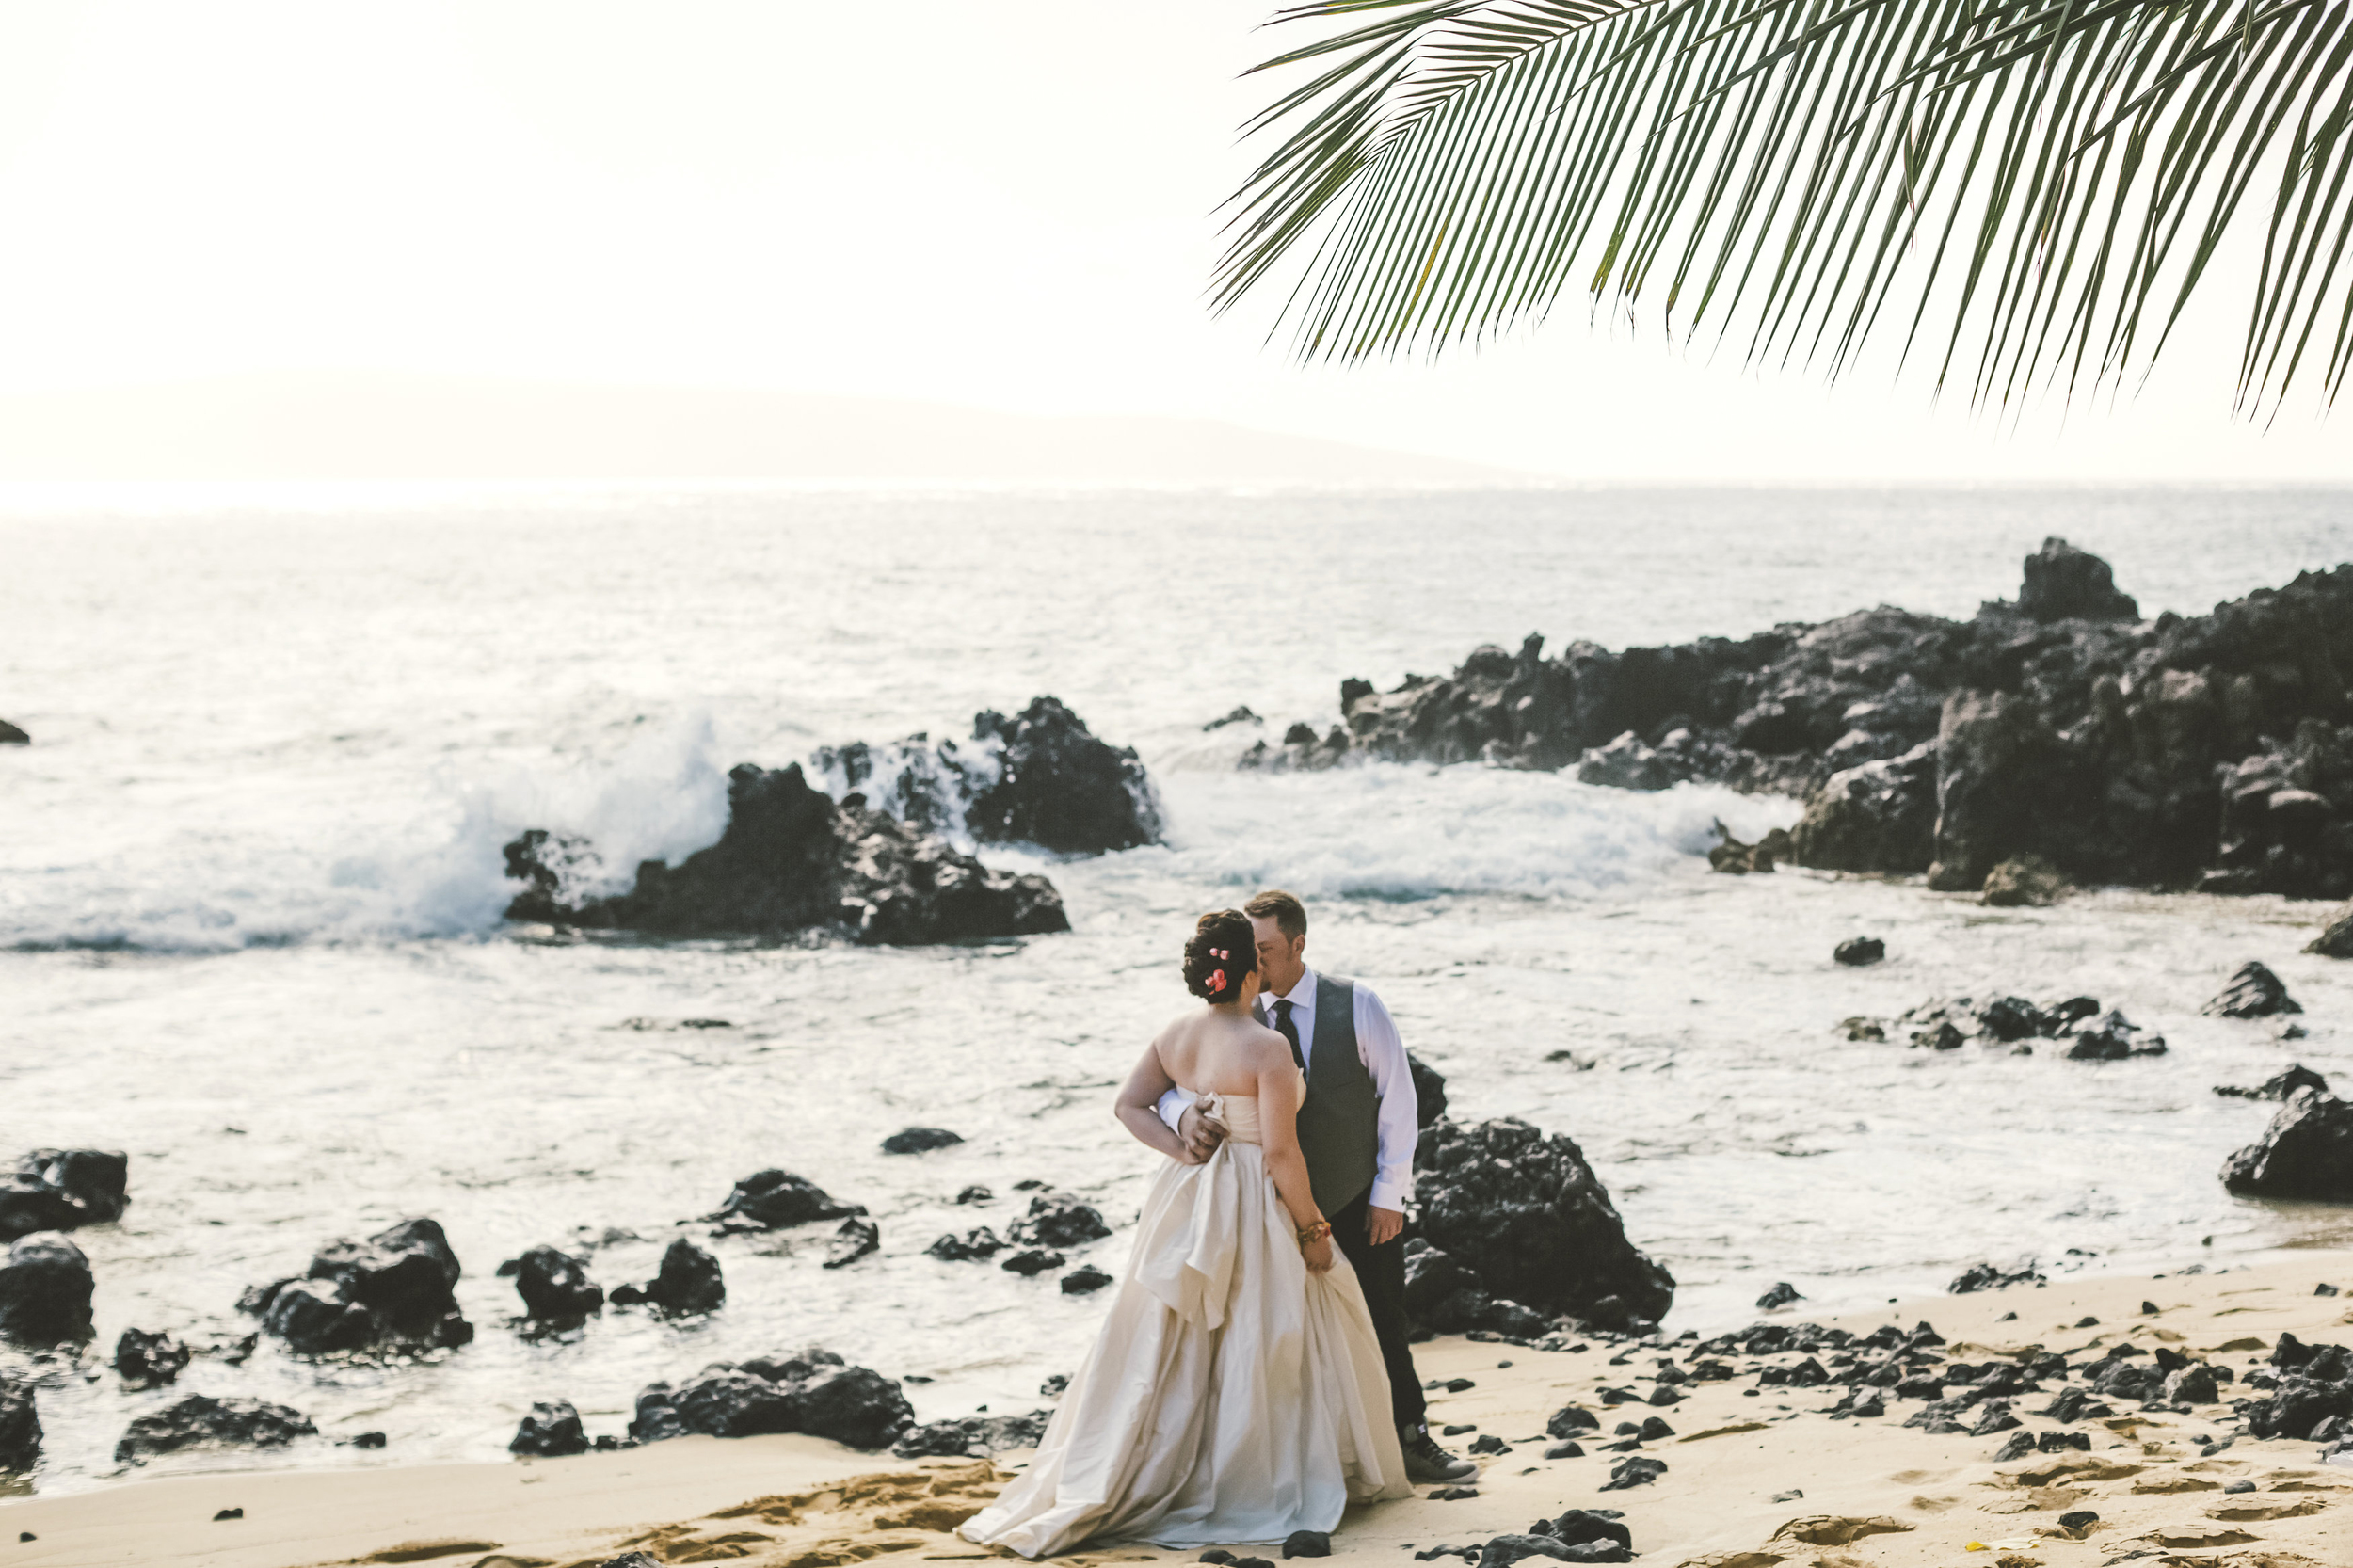 angie-diaz-photography-maui-elopement-47.jpg